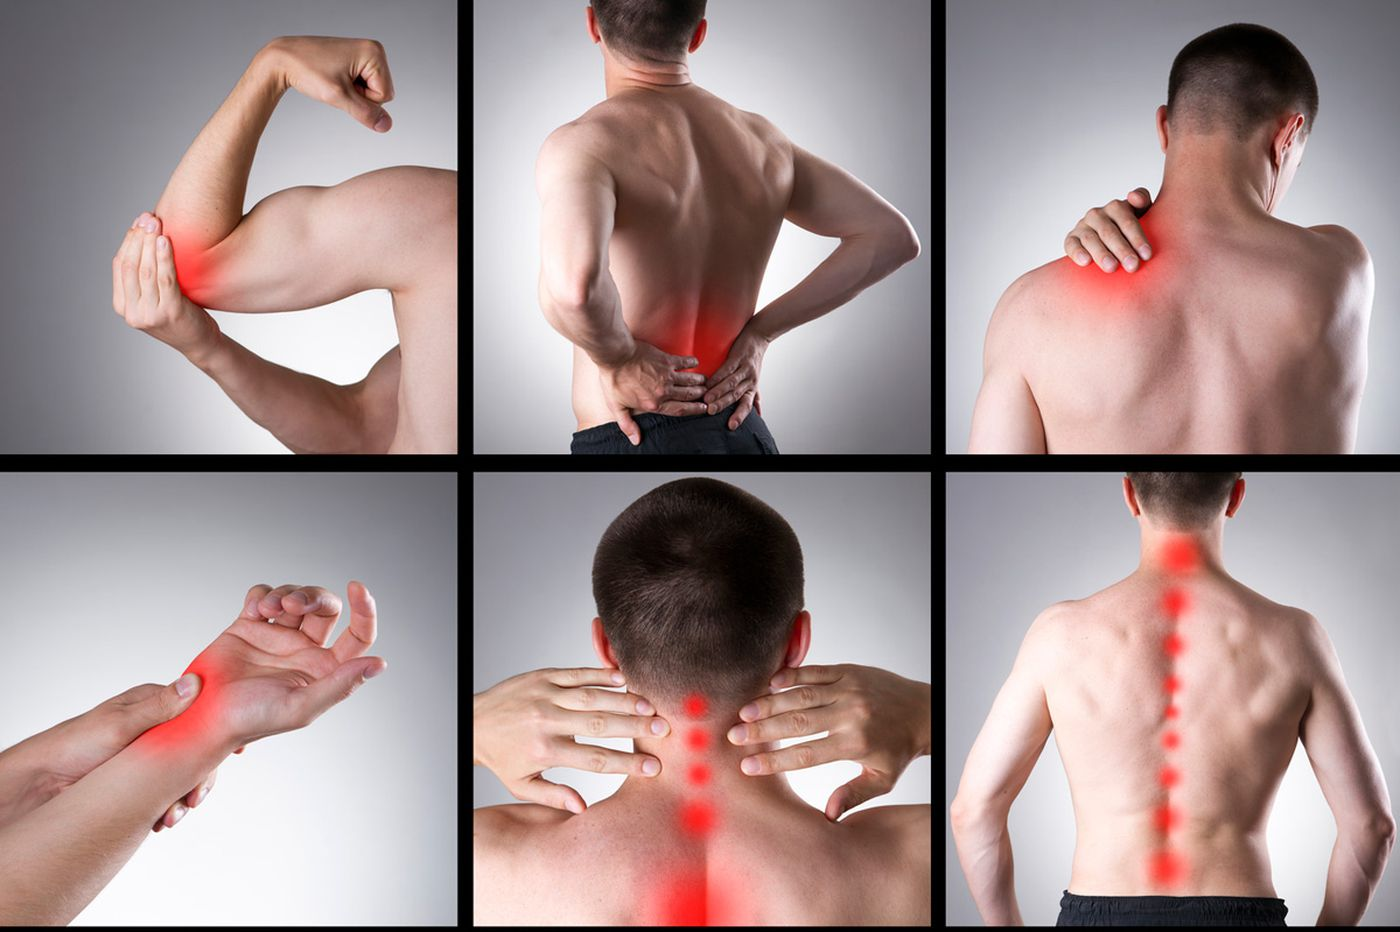 What happens to your body when you experience pain?